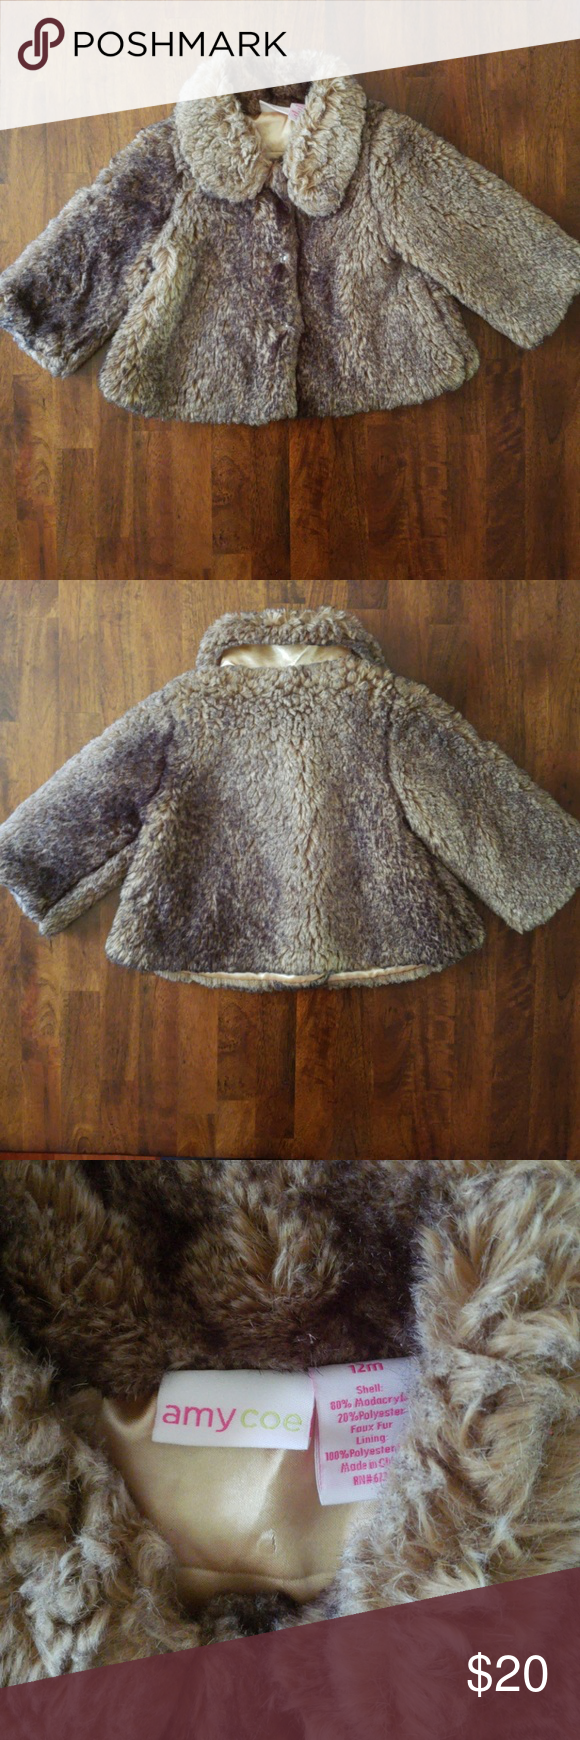 36d5a83af Toddler Girl Faux Fur Jacket